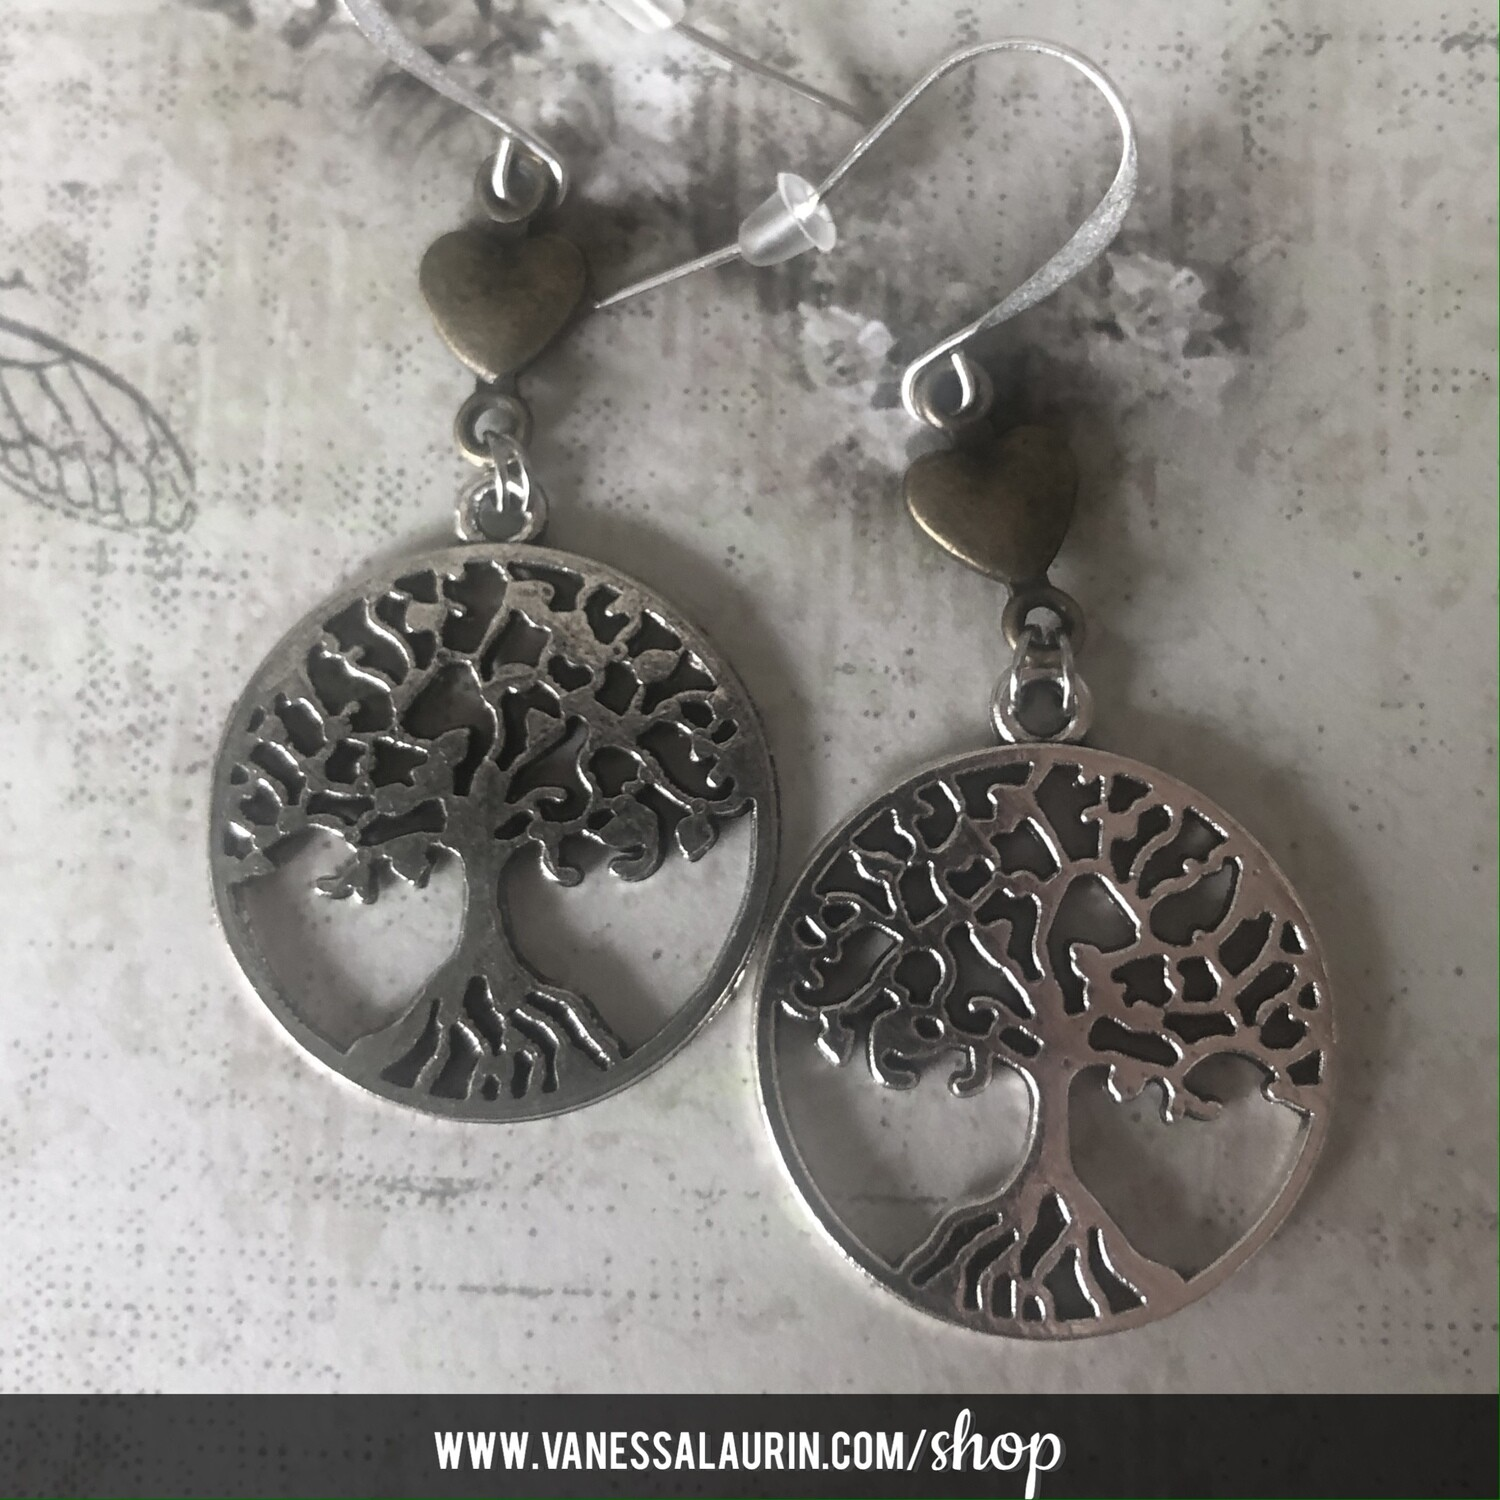 Woodland Whimsy Collection: Tree lover earrings